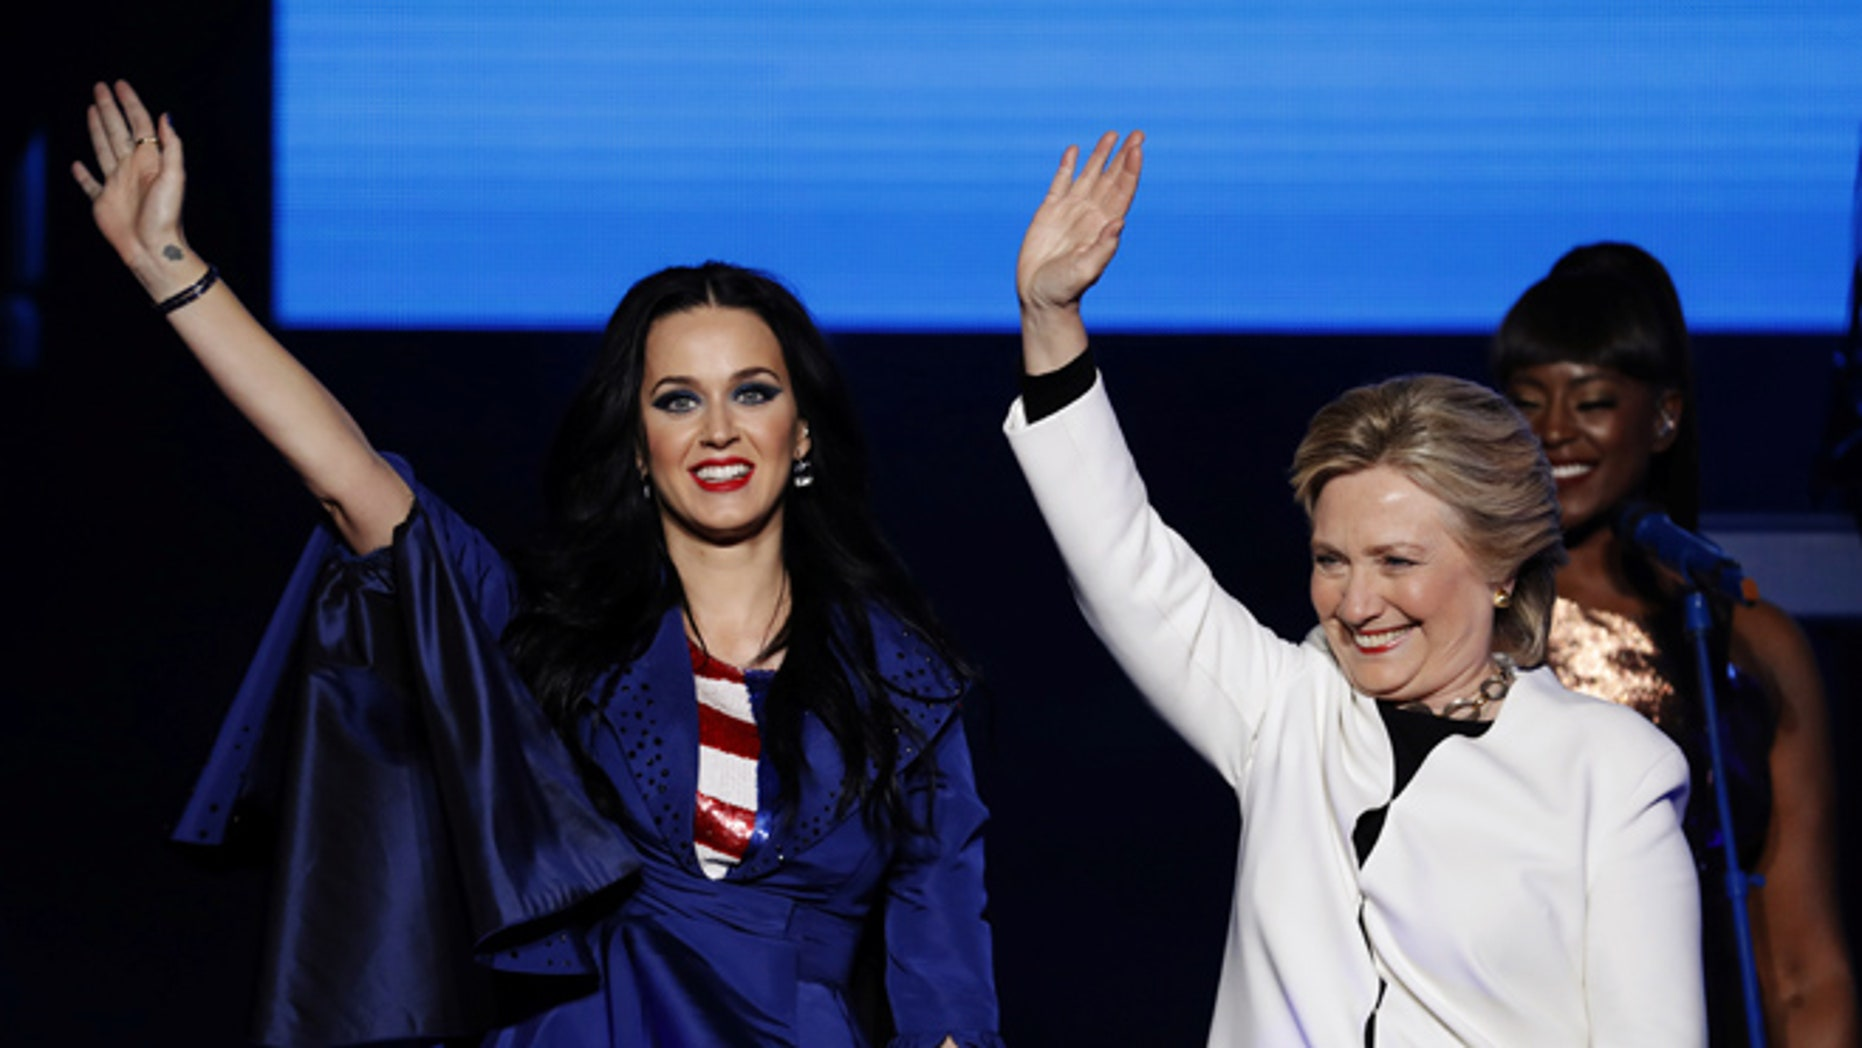 Katy Perry has been campaigning for Hillary Clinton.